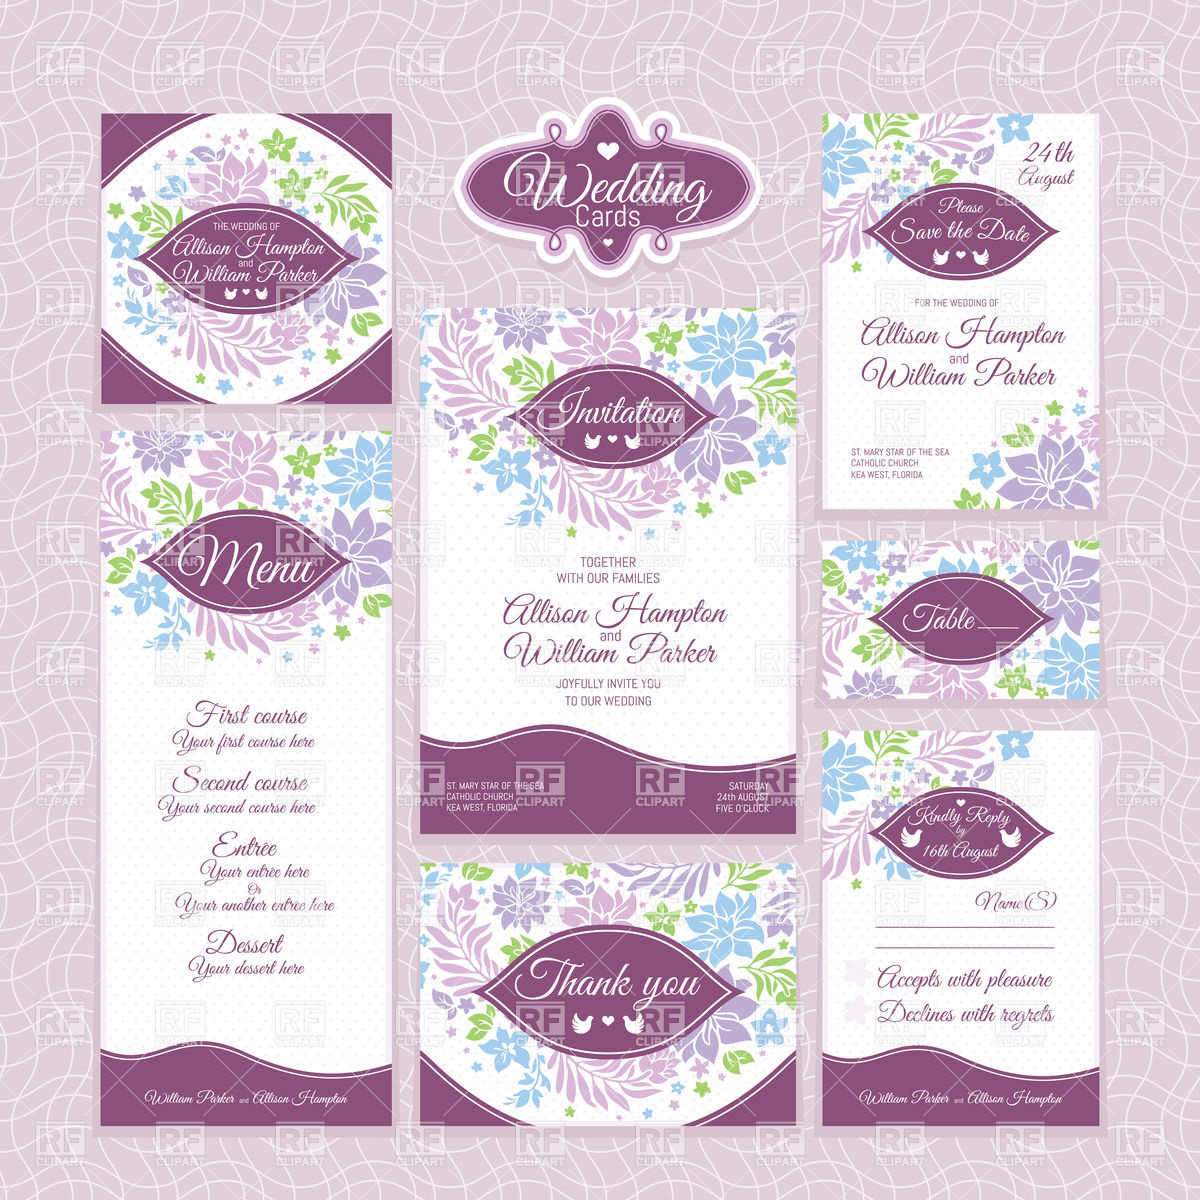 Set of floral wedding invitations, thank you cards, table cards.